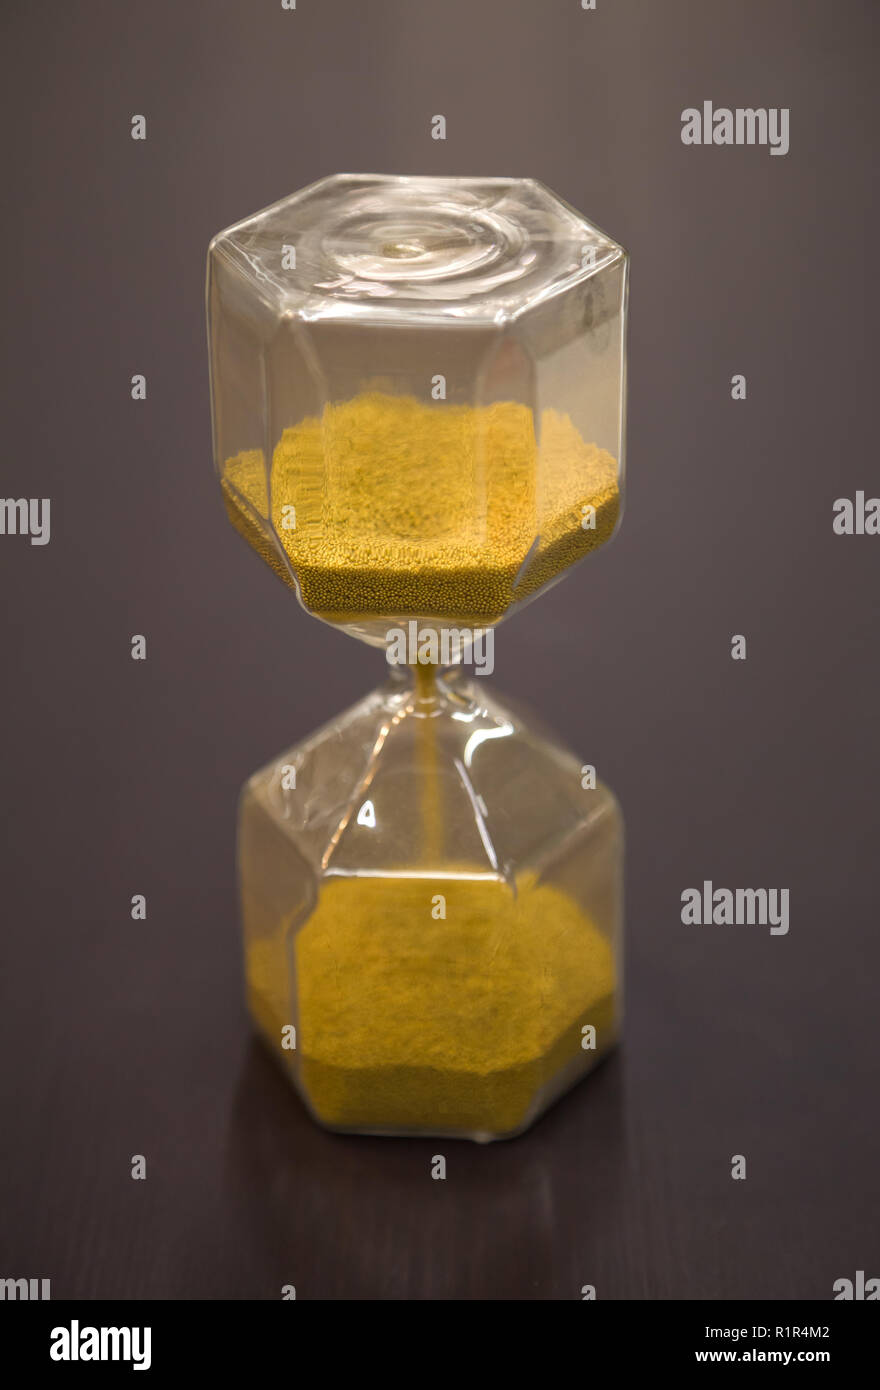 Hourglass on rustic wooden table. Time running out or deadline concept. Closeup - Stock Image